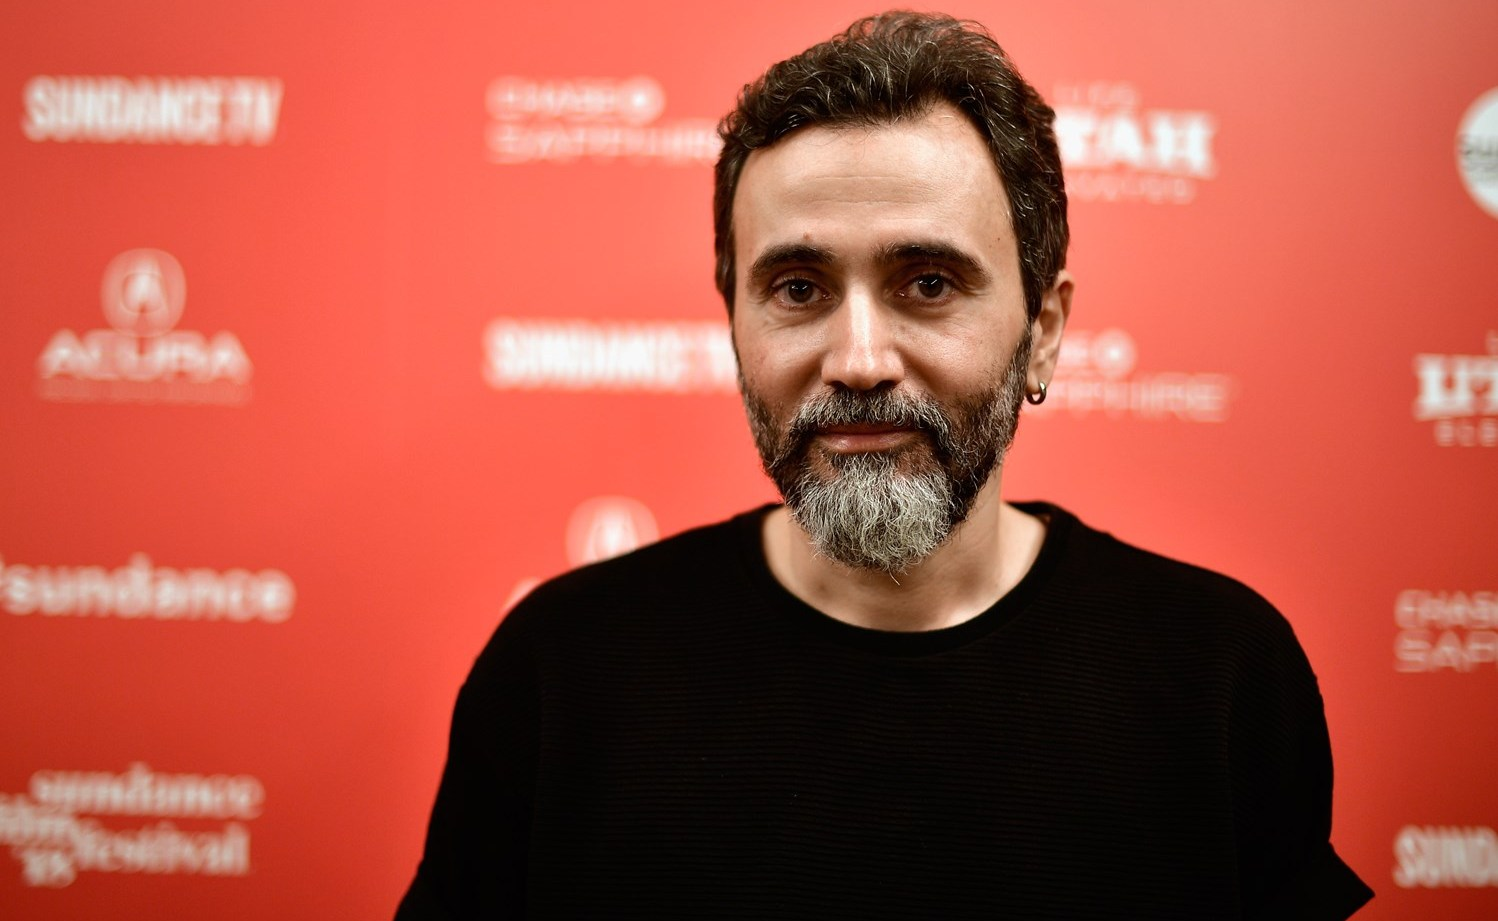 Oscar-Nominated Syrian Director Talal Derki Among New Jury Members Announced for GFF19